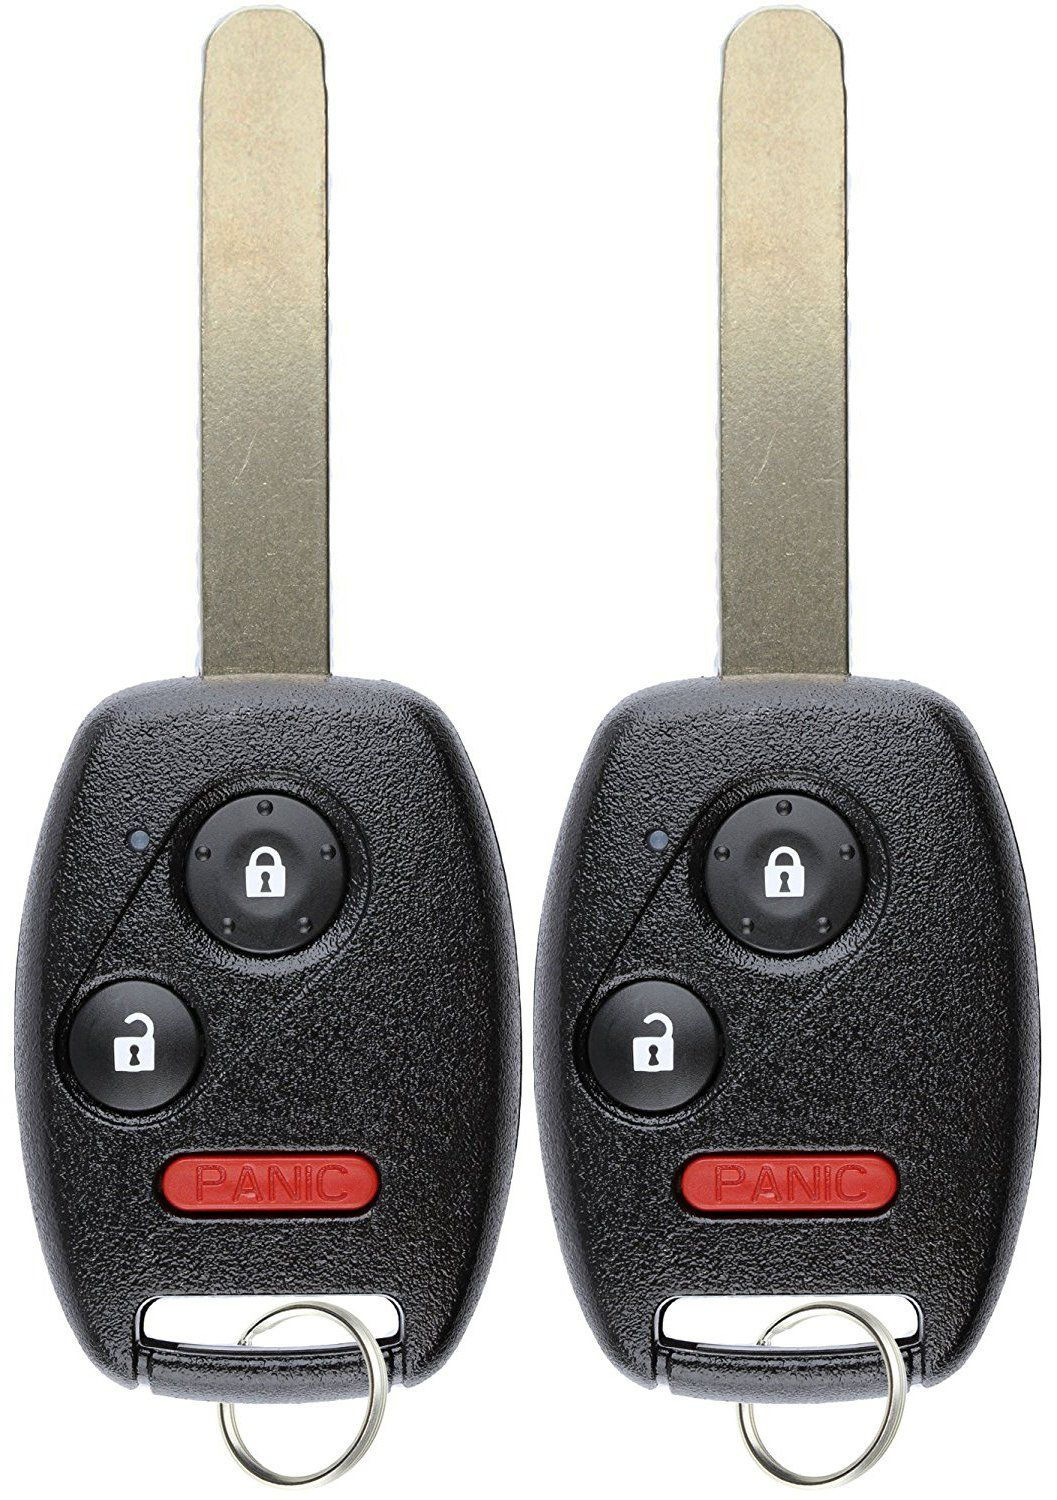 Drivestar Keyless Entry Remote Car Key Replacement for Honda Pilot Replacement for CWTWB1U545